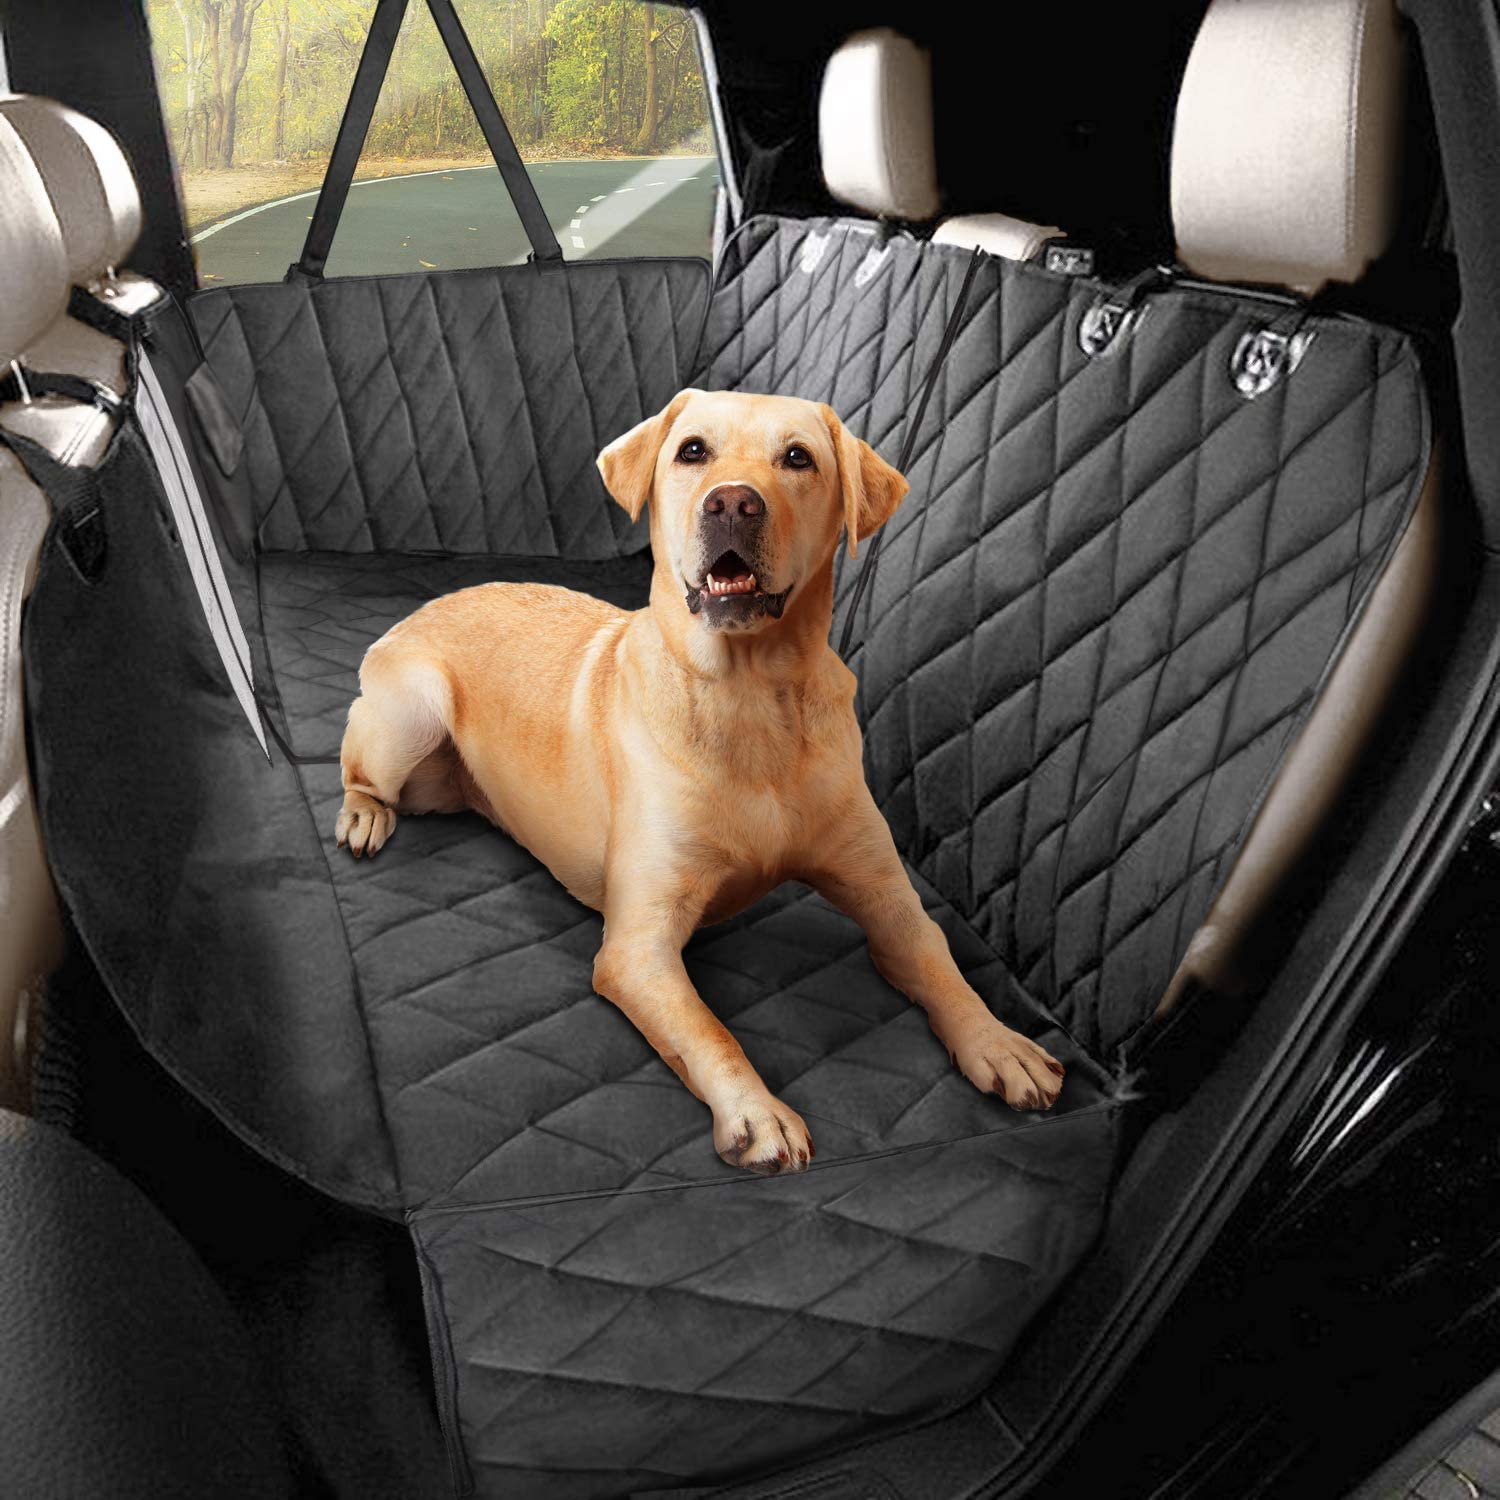 also for car trunks padded cover with side protectors 165 * 142 * 50 cm universal for any car robust material smartpeas Dog car seat cover XXL detachable